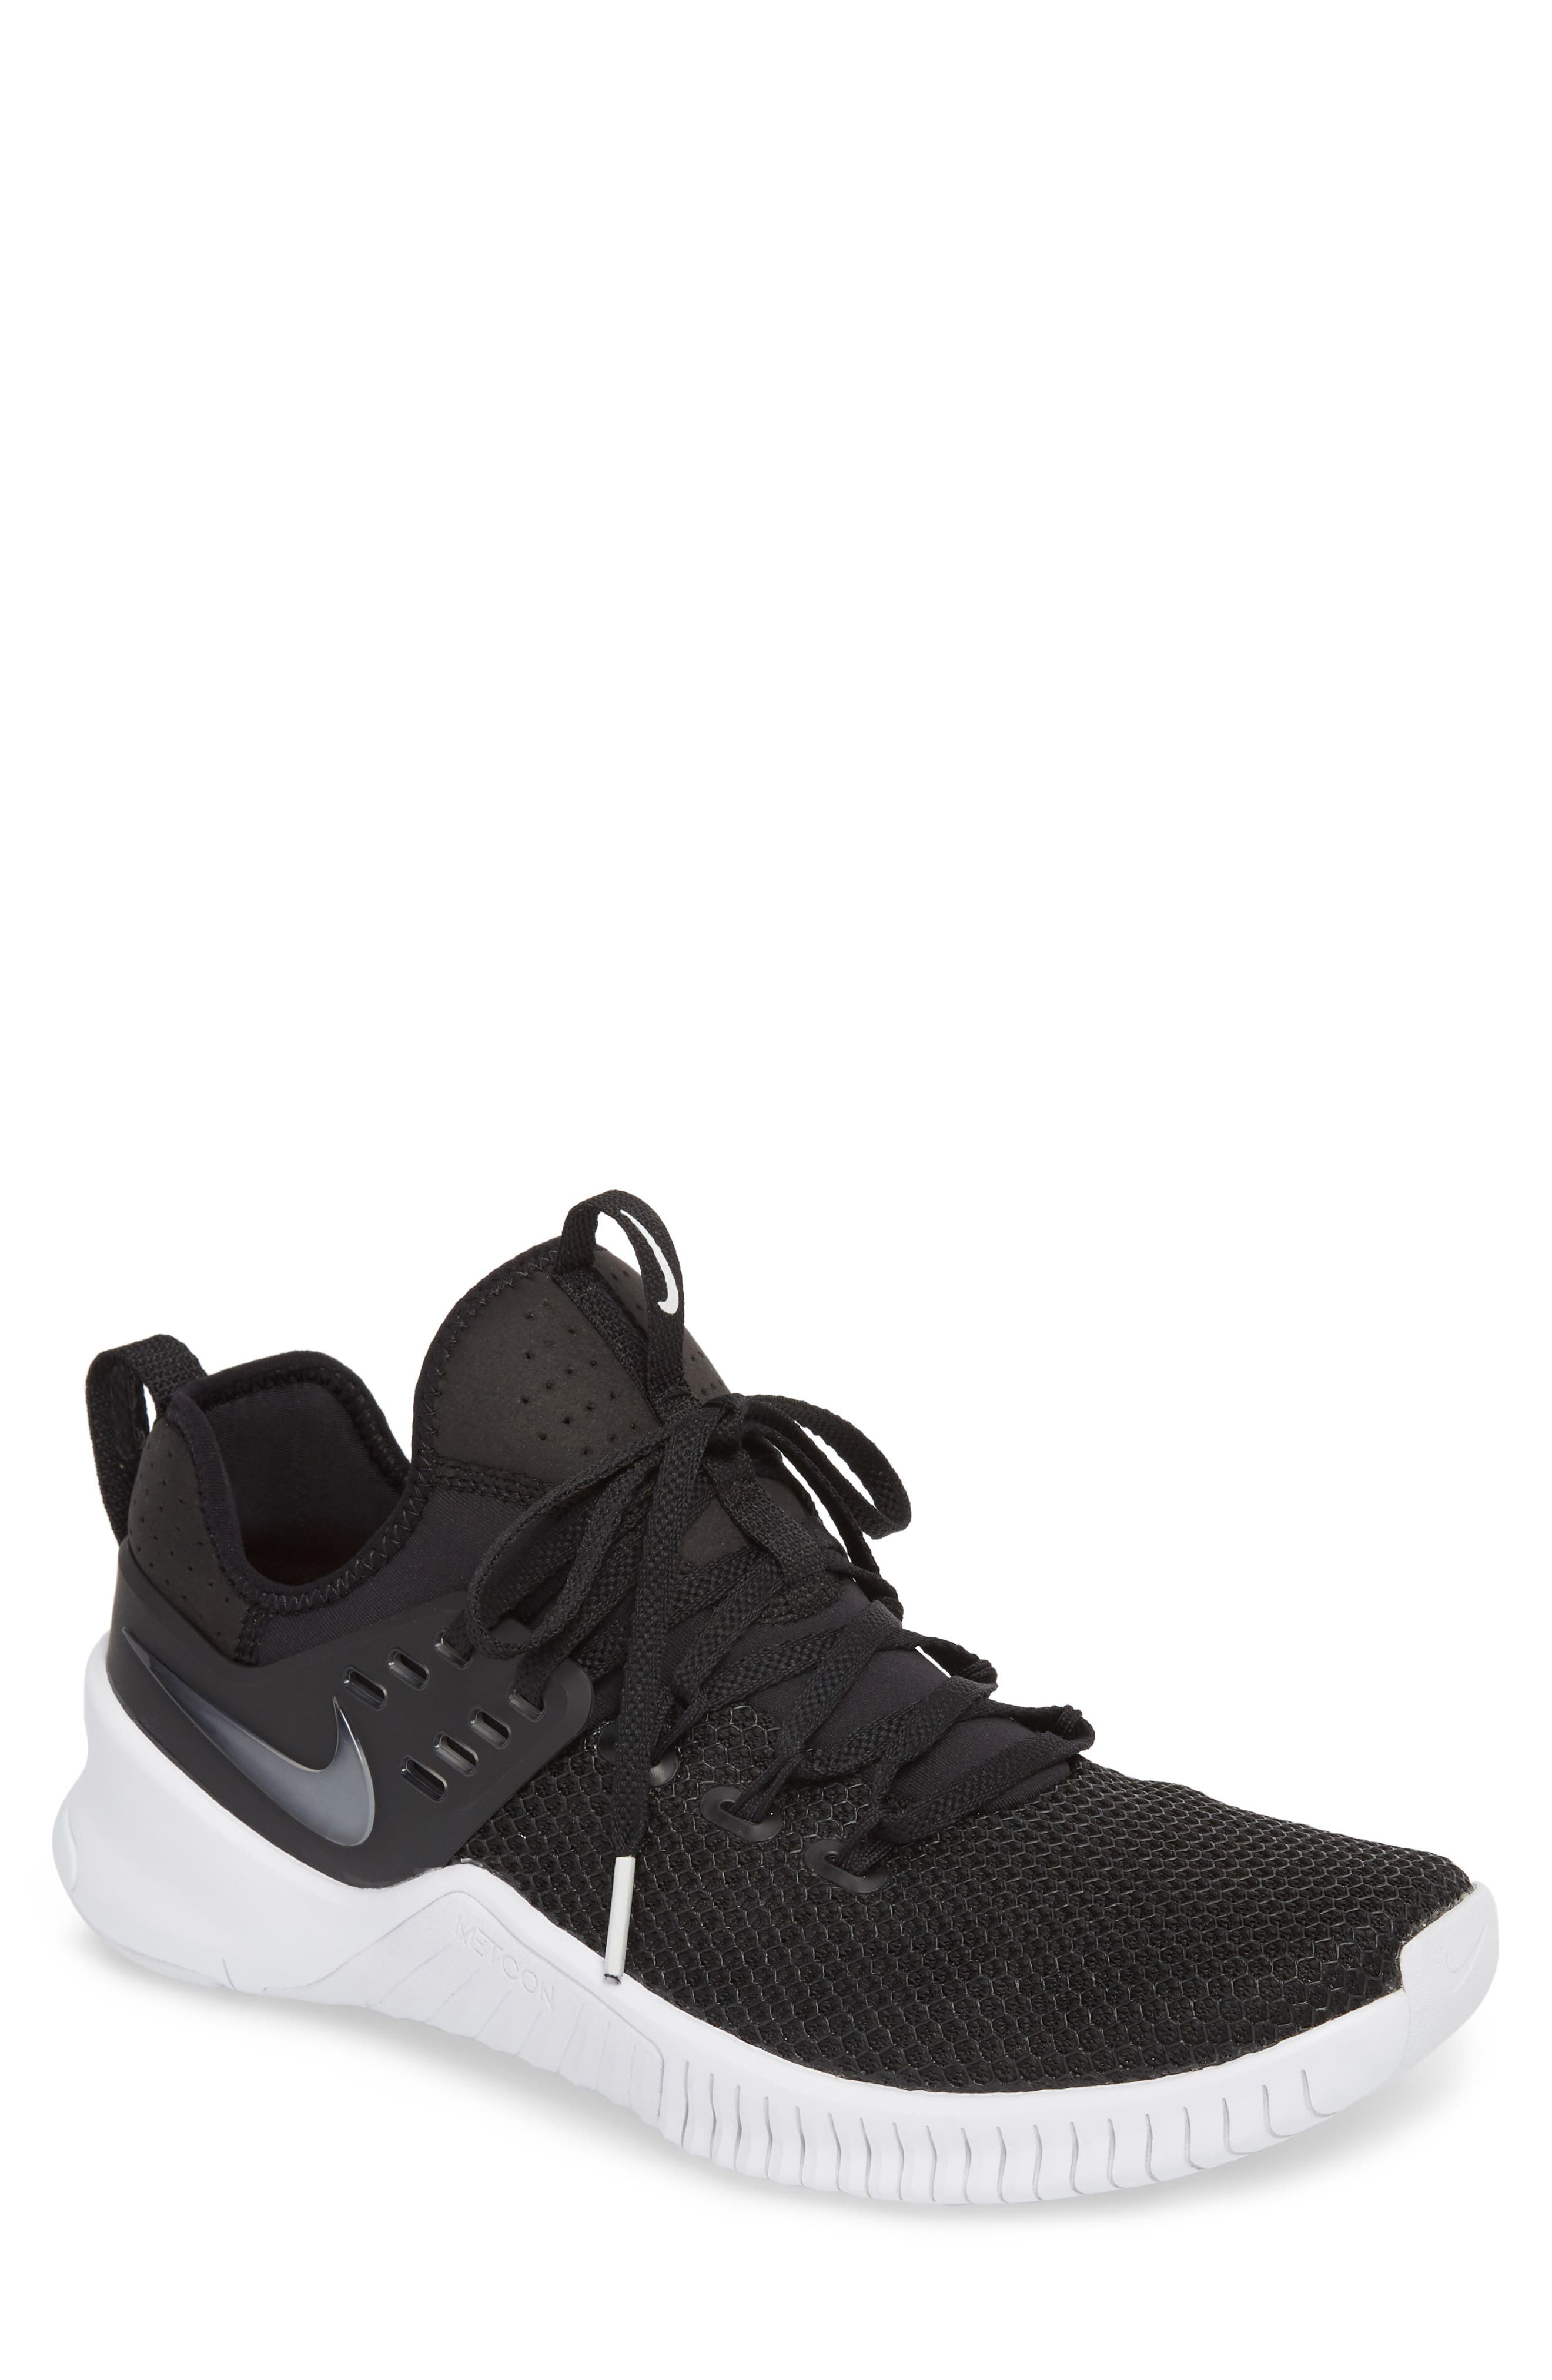 3141421a25d0 Nike Men S Free Metcon Training Sneakers From Finish Line In Black ...